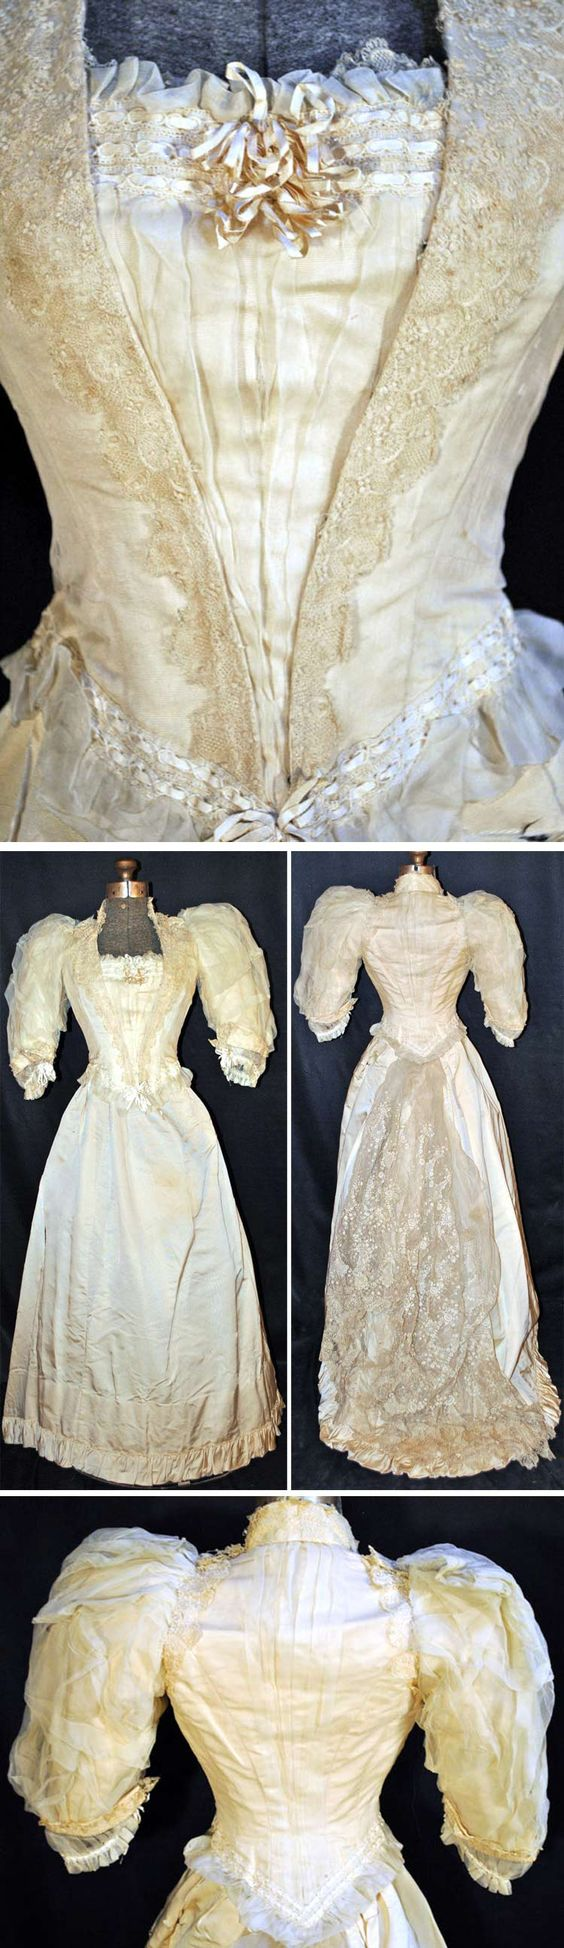 Evening gown, Arnold Constable NY (retailer), ca. 1890. Two-piece gown of ivory satin and gauze. Abby's Vintage/ebay